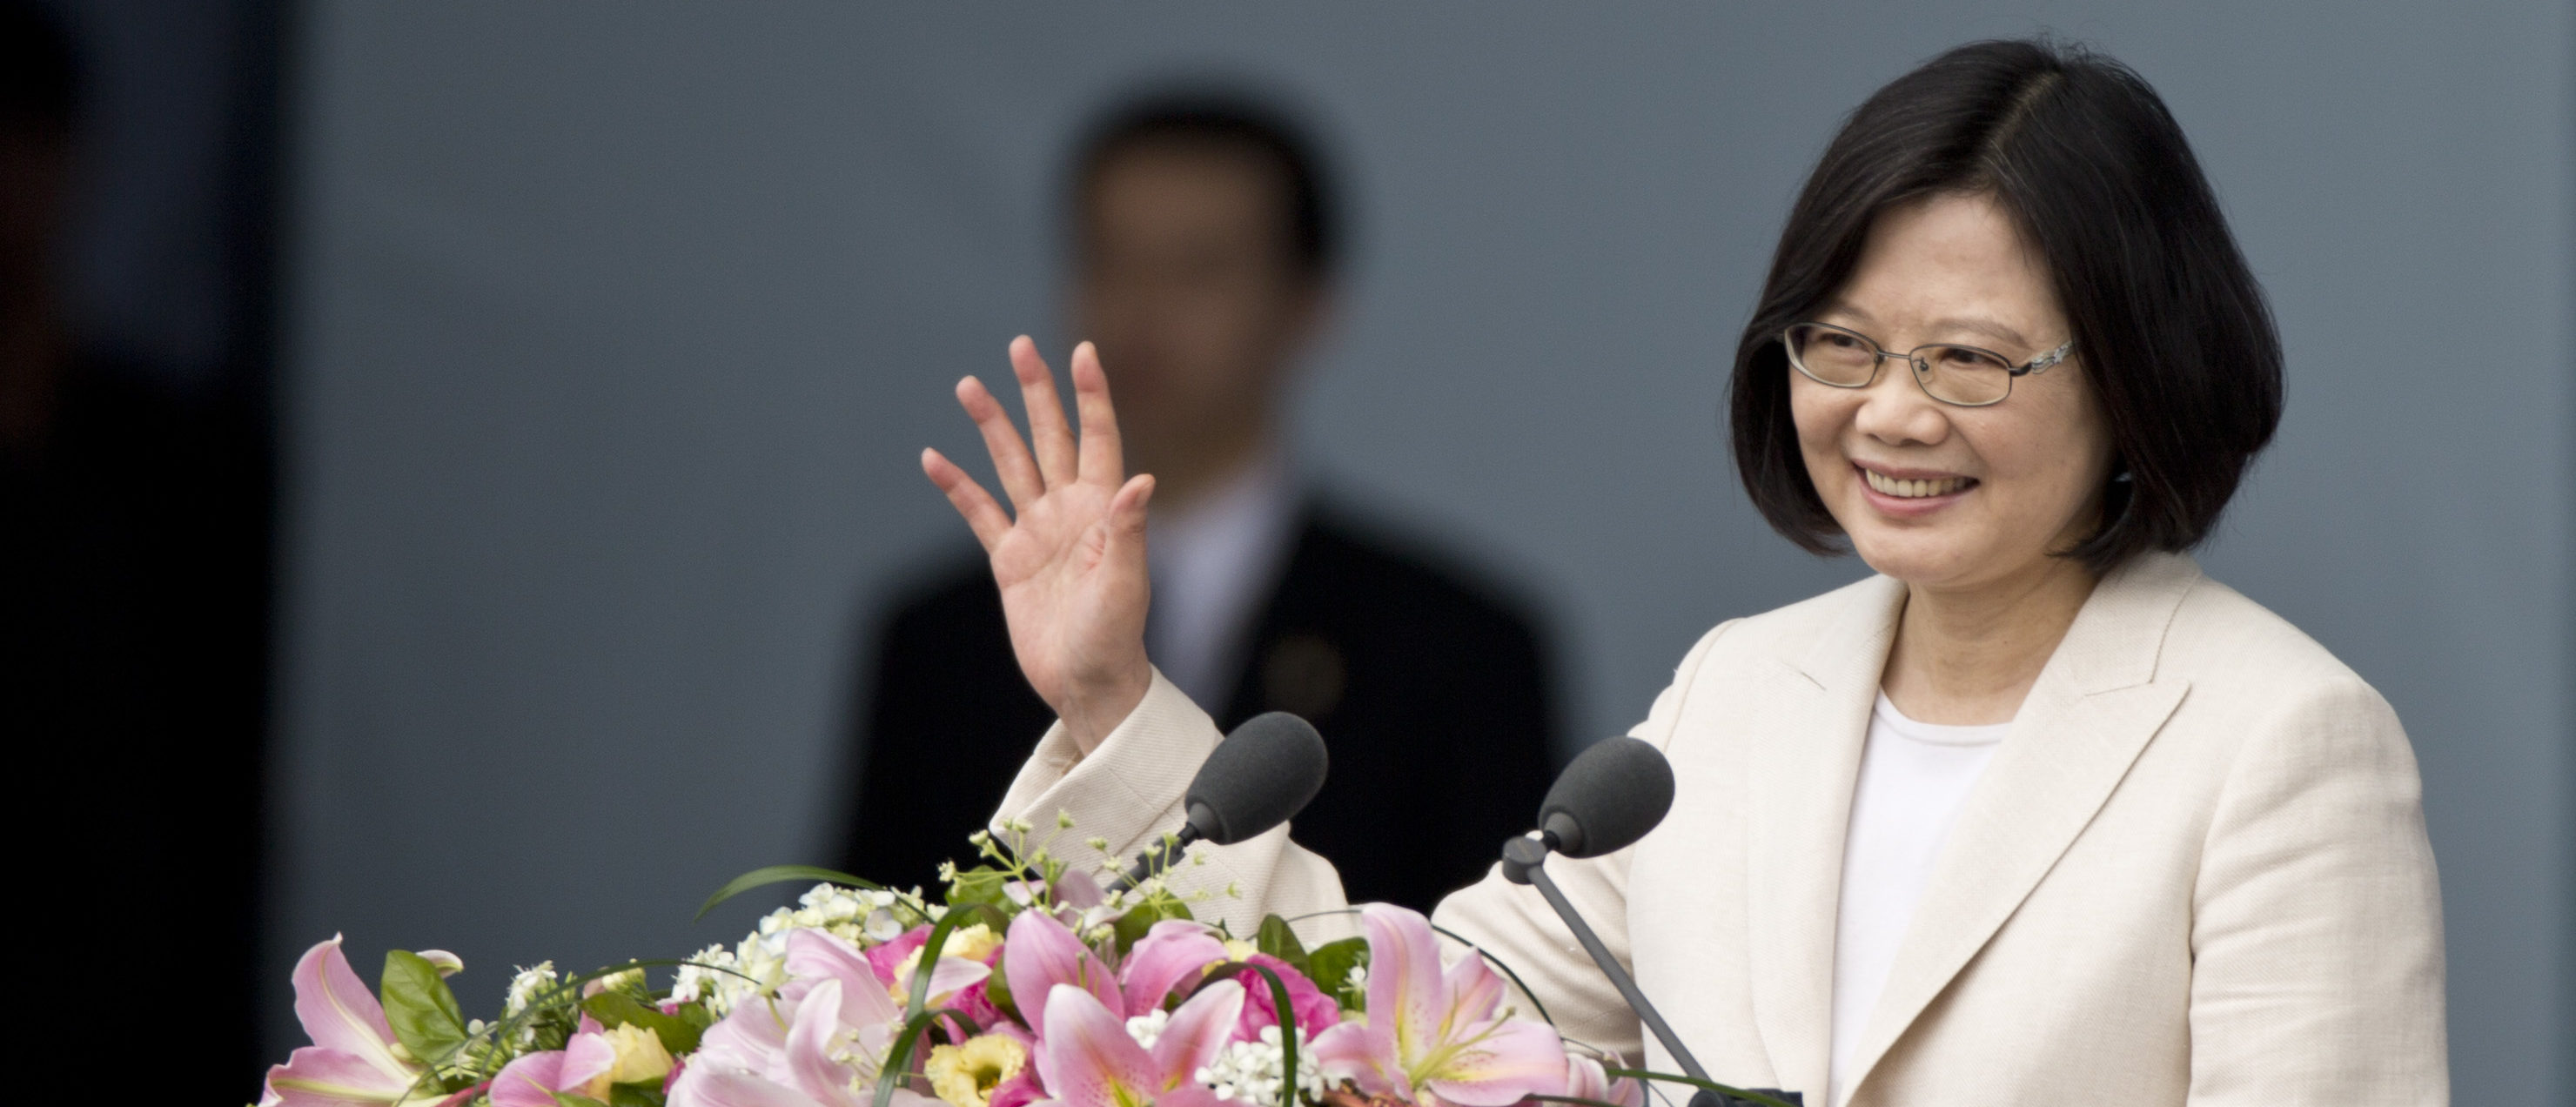 TAIPEI, TAIWAN - MAY 20: Taiwan President Tsai Ing-wen waves to the crowd on May 20, 2016 in Taipei, Taiwan. Taiwan's new president Tsai Ing-wen took oath of office on May 20 after a landslide election victory on January 16, 2016. (Photo by Ashley Pon/Getty Images)